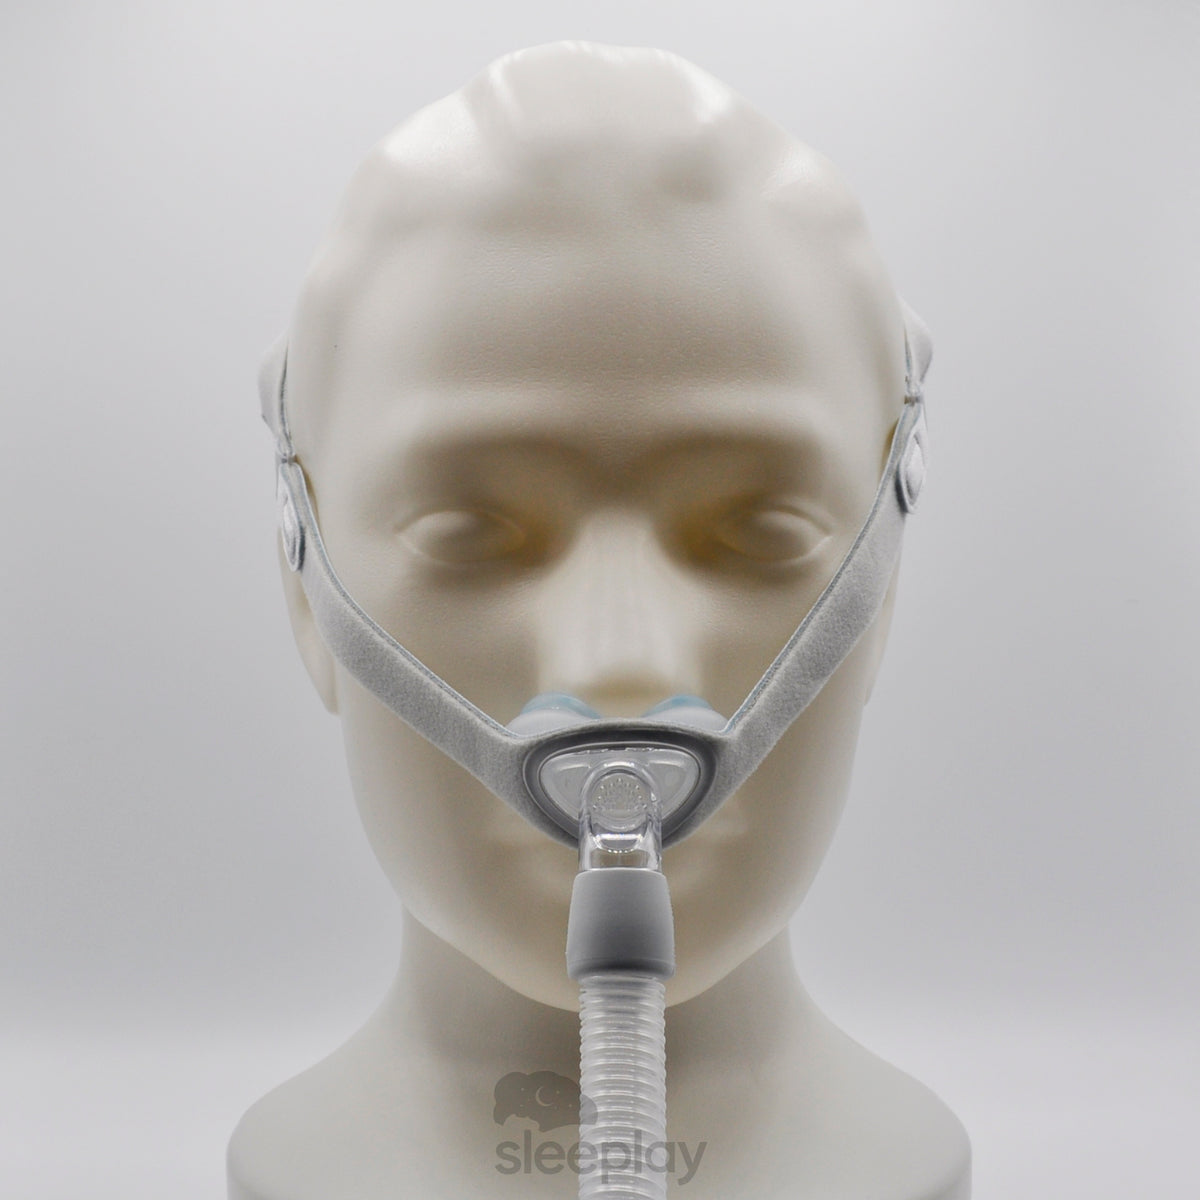 Face Wearing Nuance Nasal Pillow Mask From The Front.